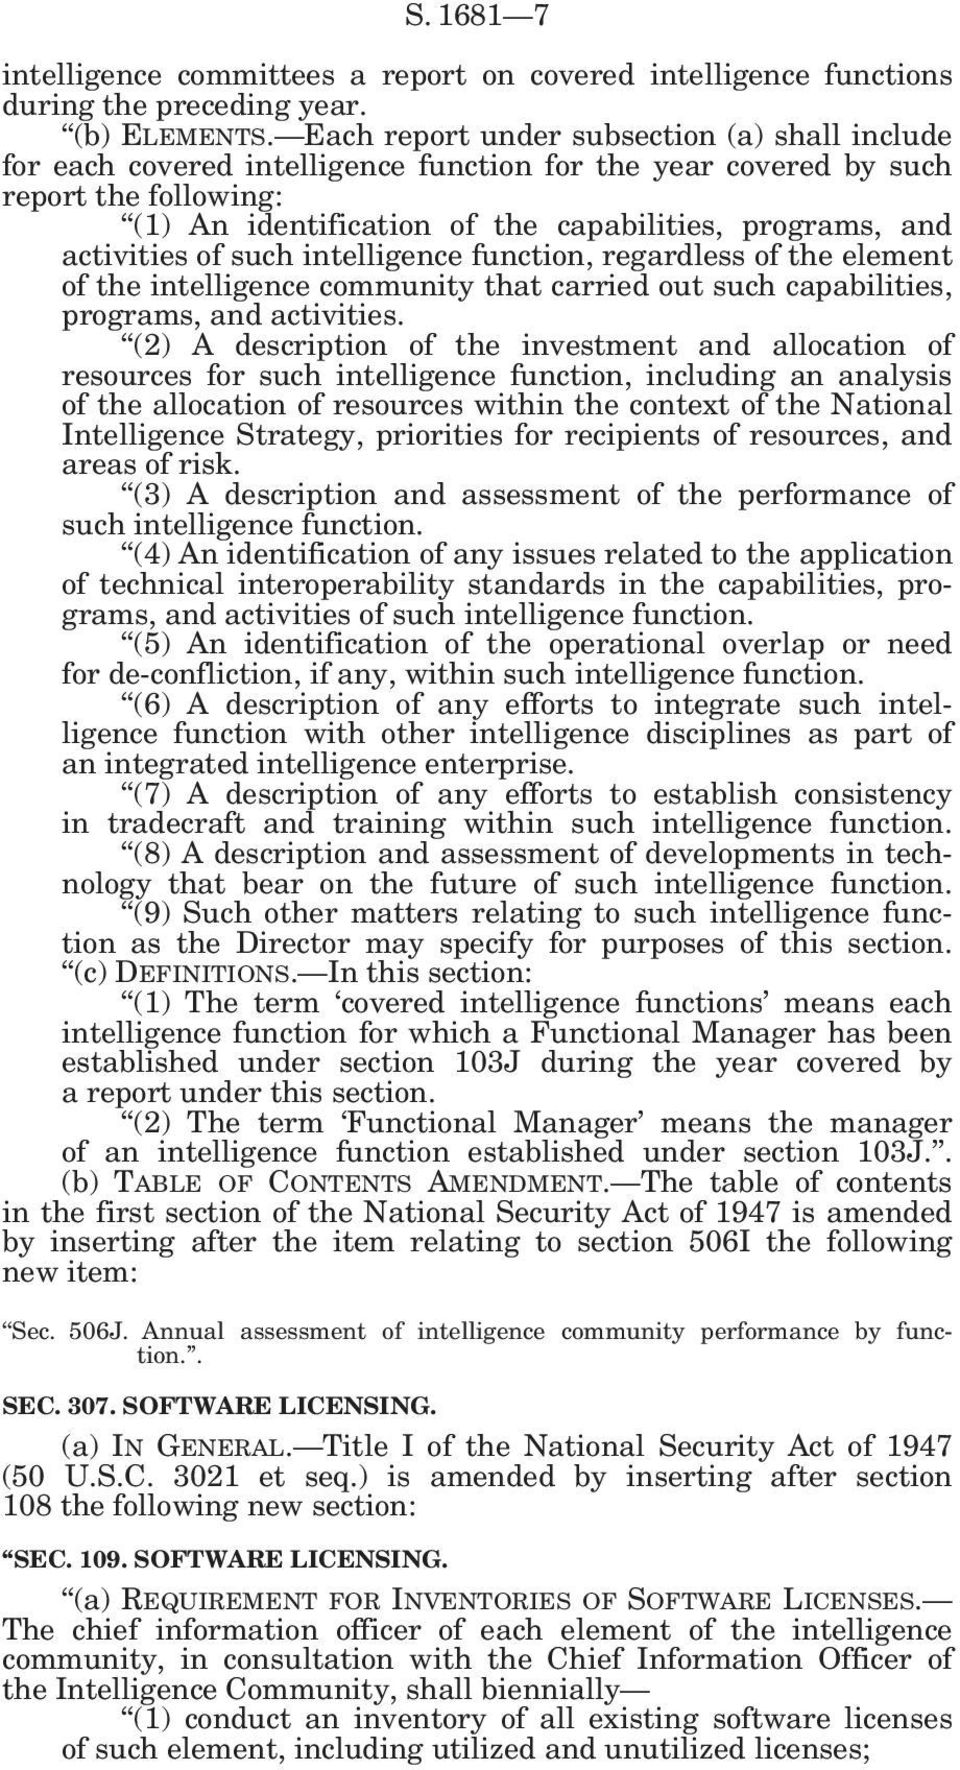 activities of such intelligence function, regardless of the element of the intelligence community that carried out such capabilities, programs, and activities.